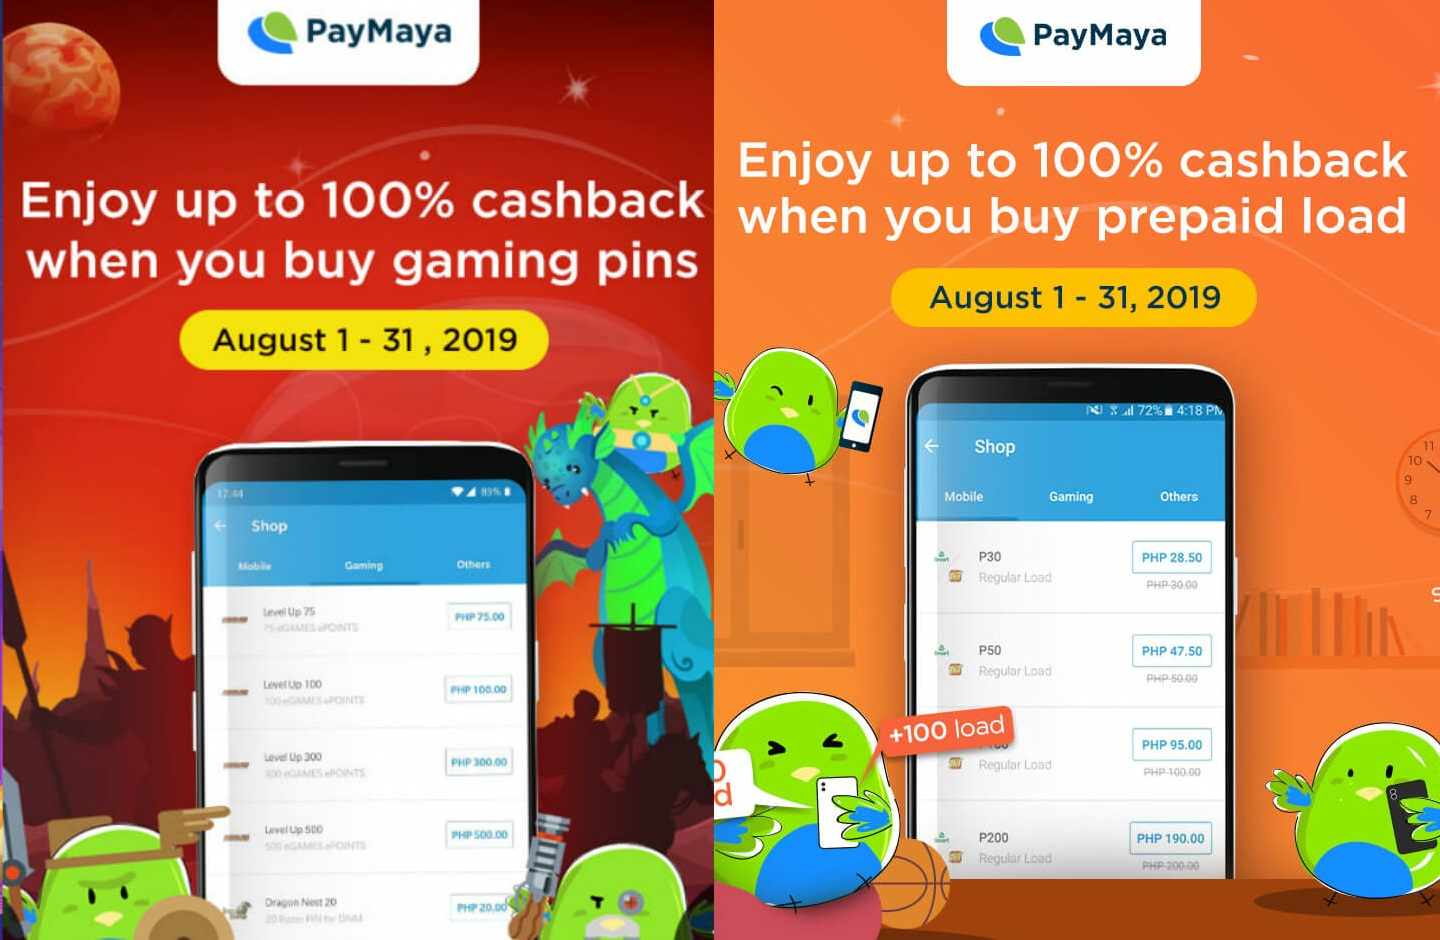 paymaya, Check Out these Awesome Deals from PayMaya for August!, Gadget Pilipinas, Gadget Pilipinas